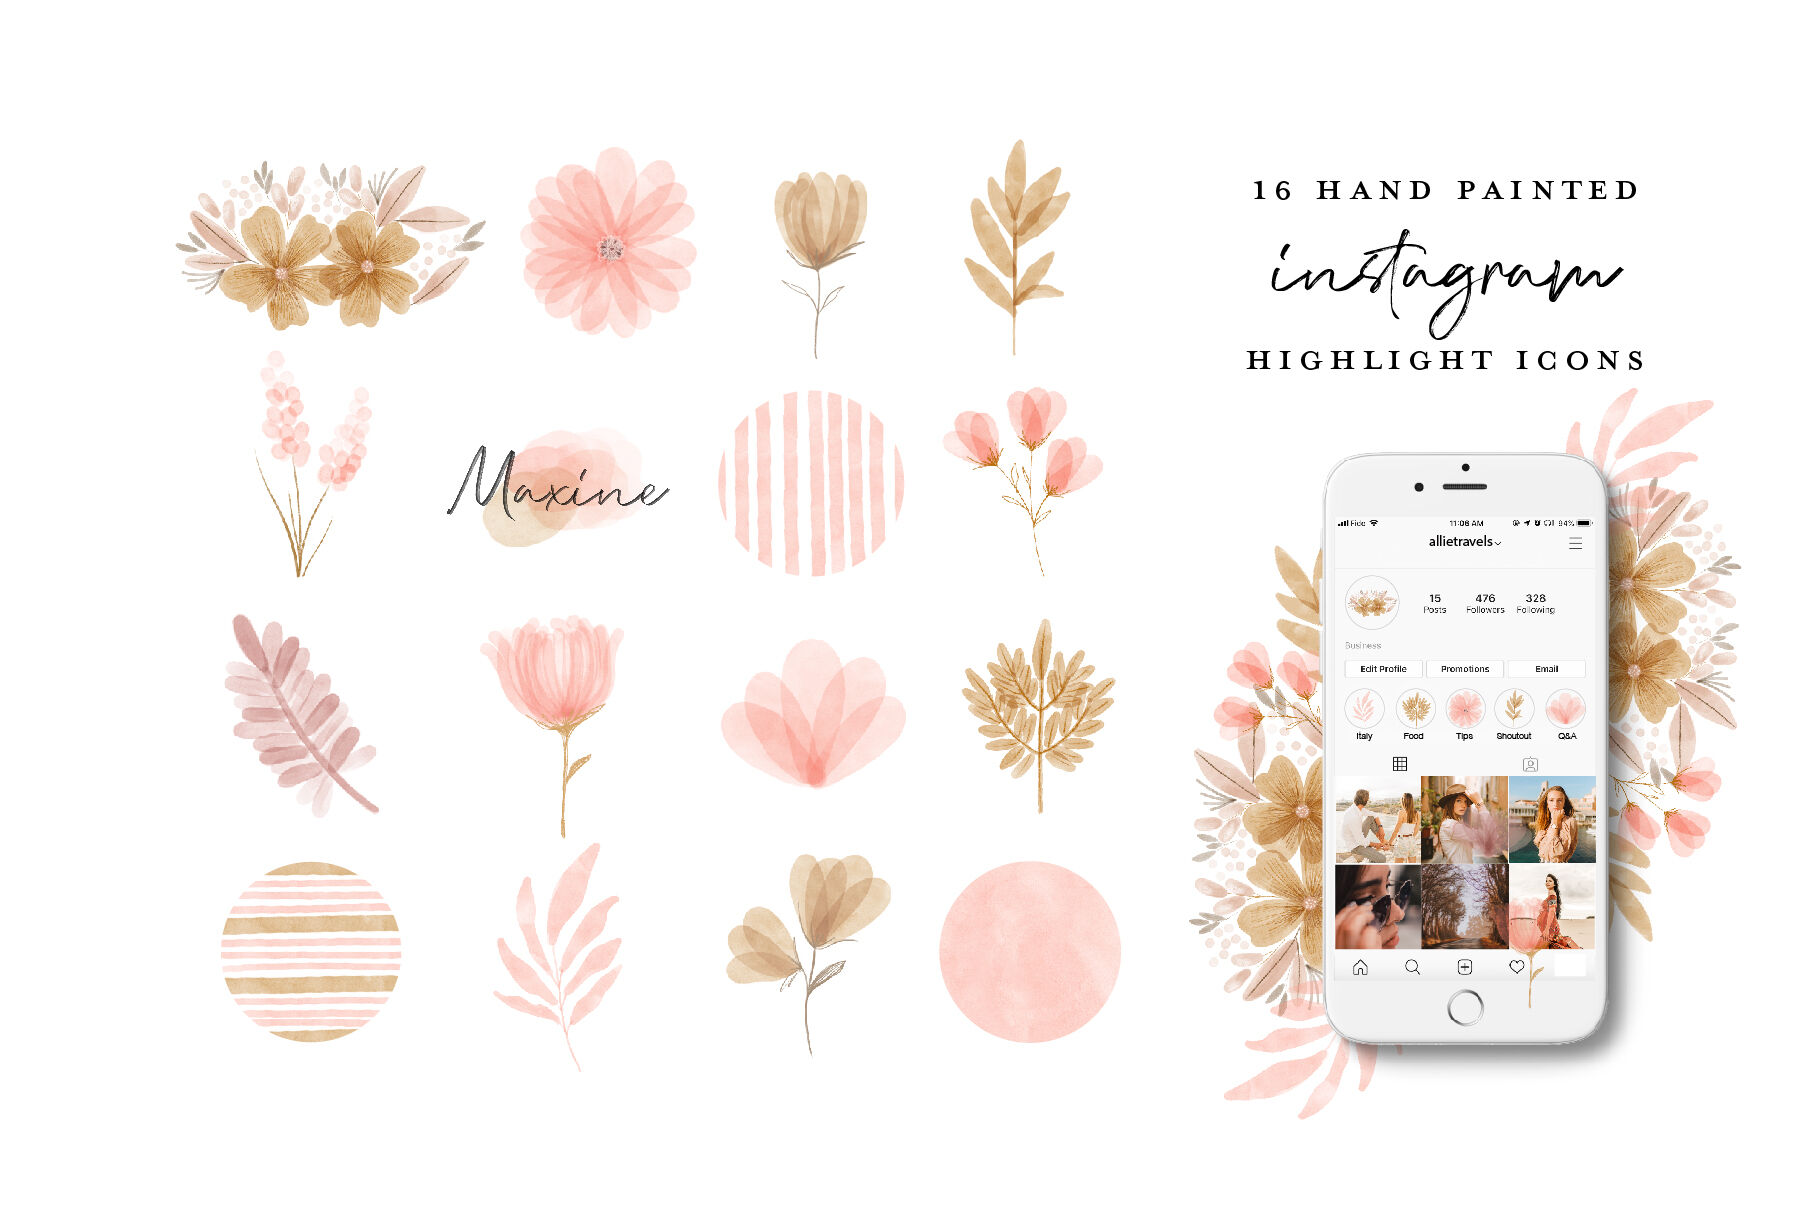 Download Instagram Highlights Mockup Free Yellow Images